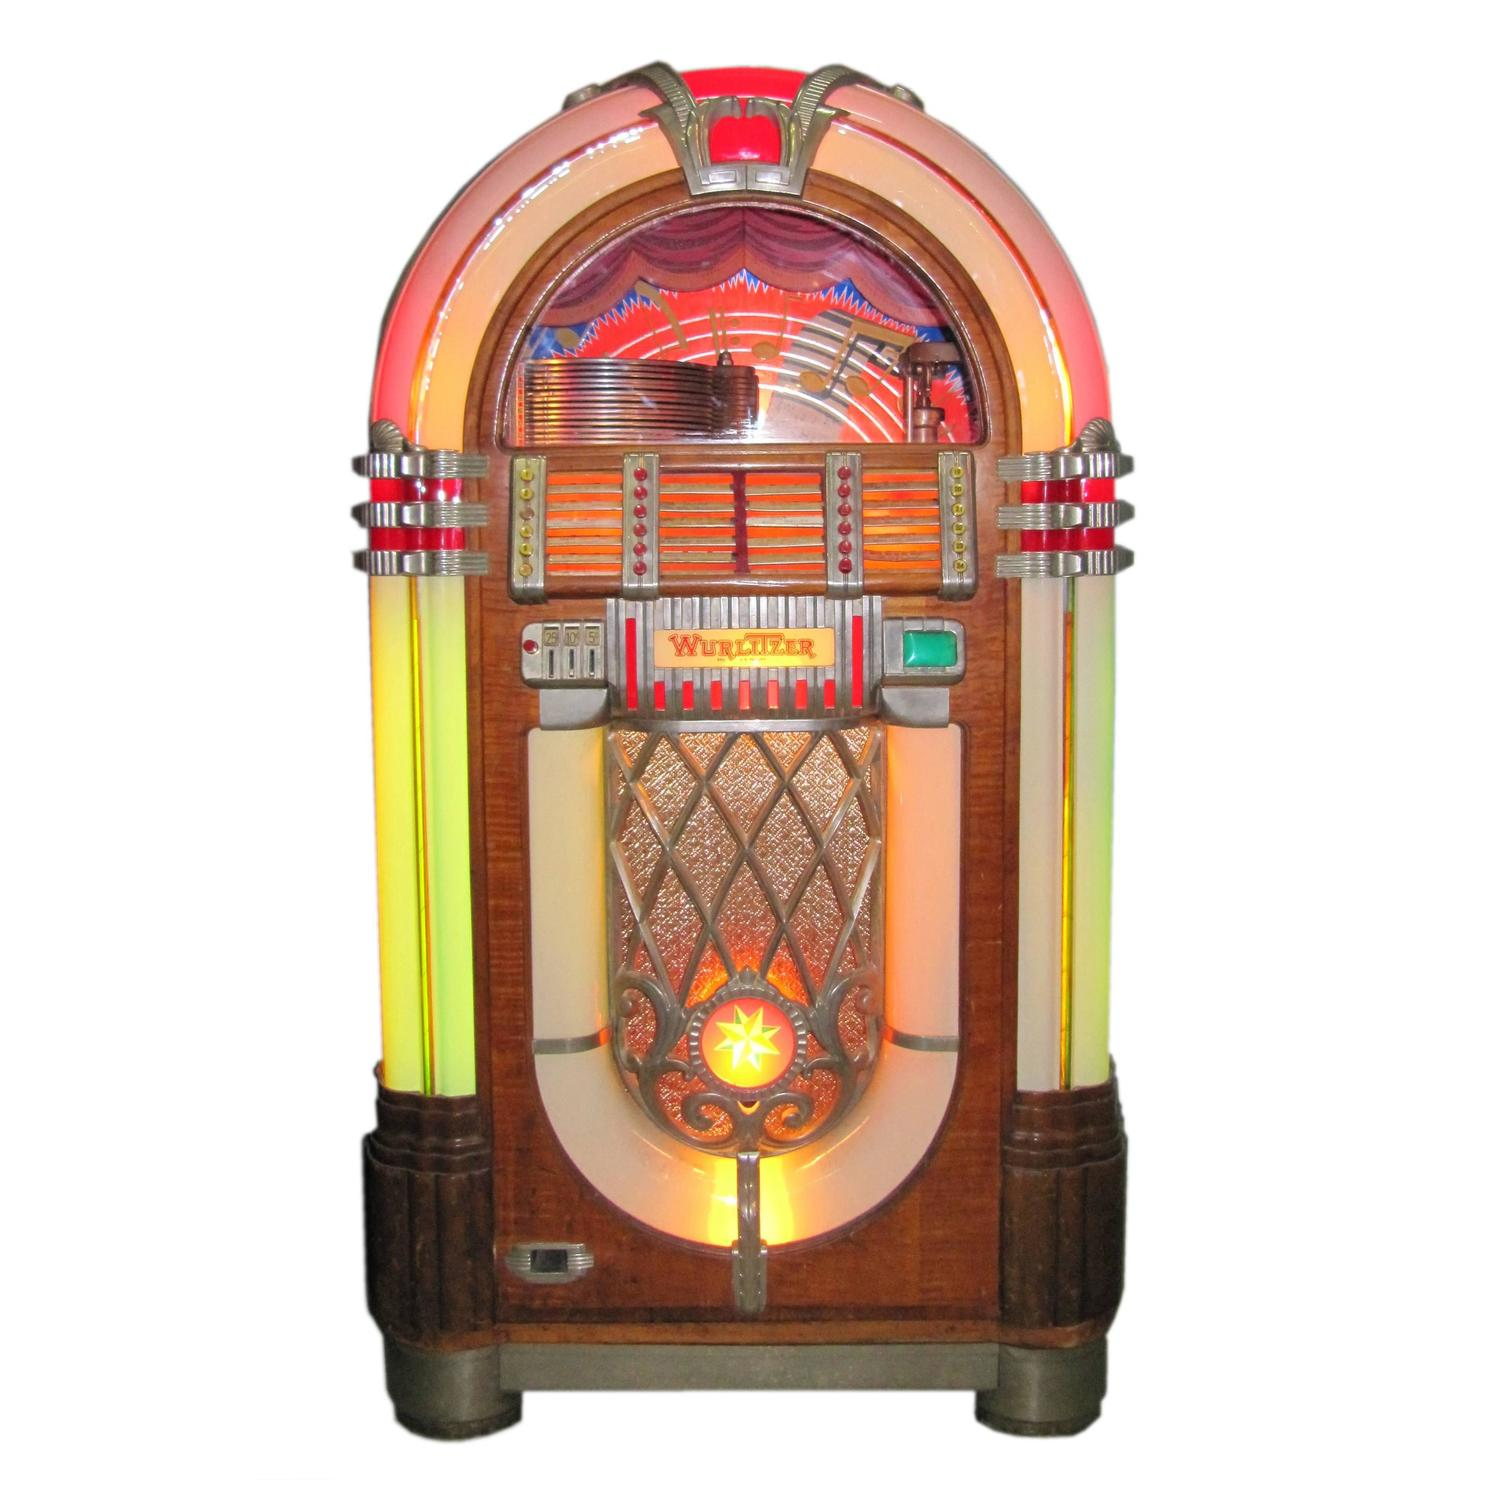 coolest rare wurlitzer juke box ever made original 39 1015. Black Bedroom Furniture Sets. Home Design Ideas